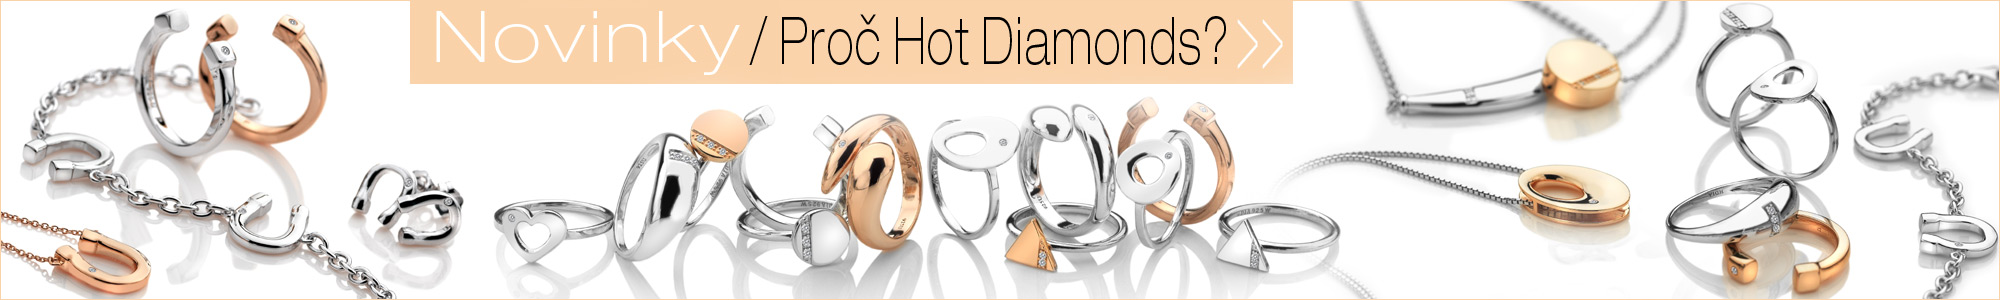 Nové Hot Diamonds